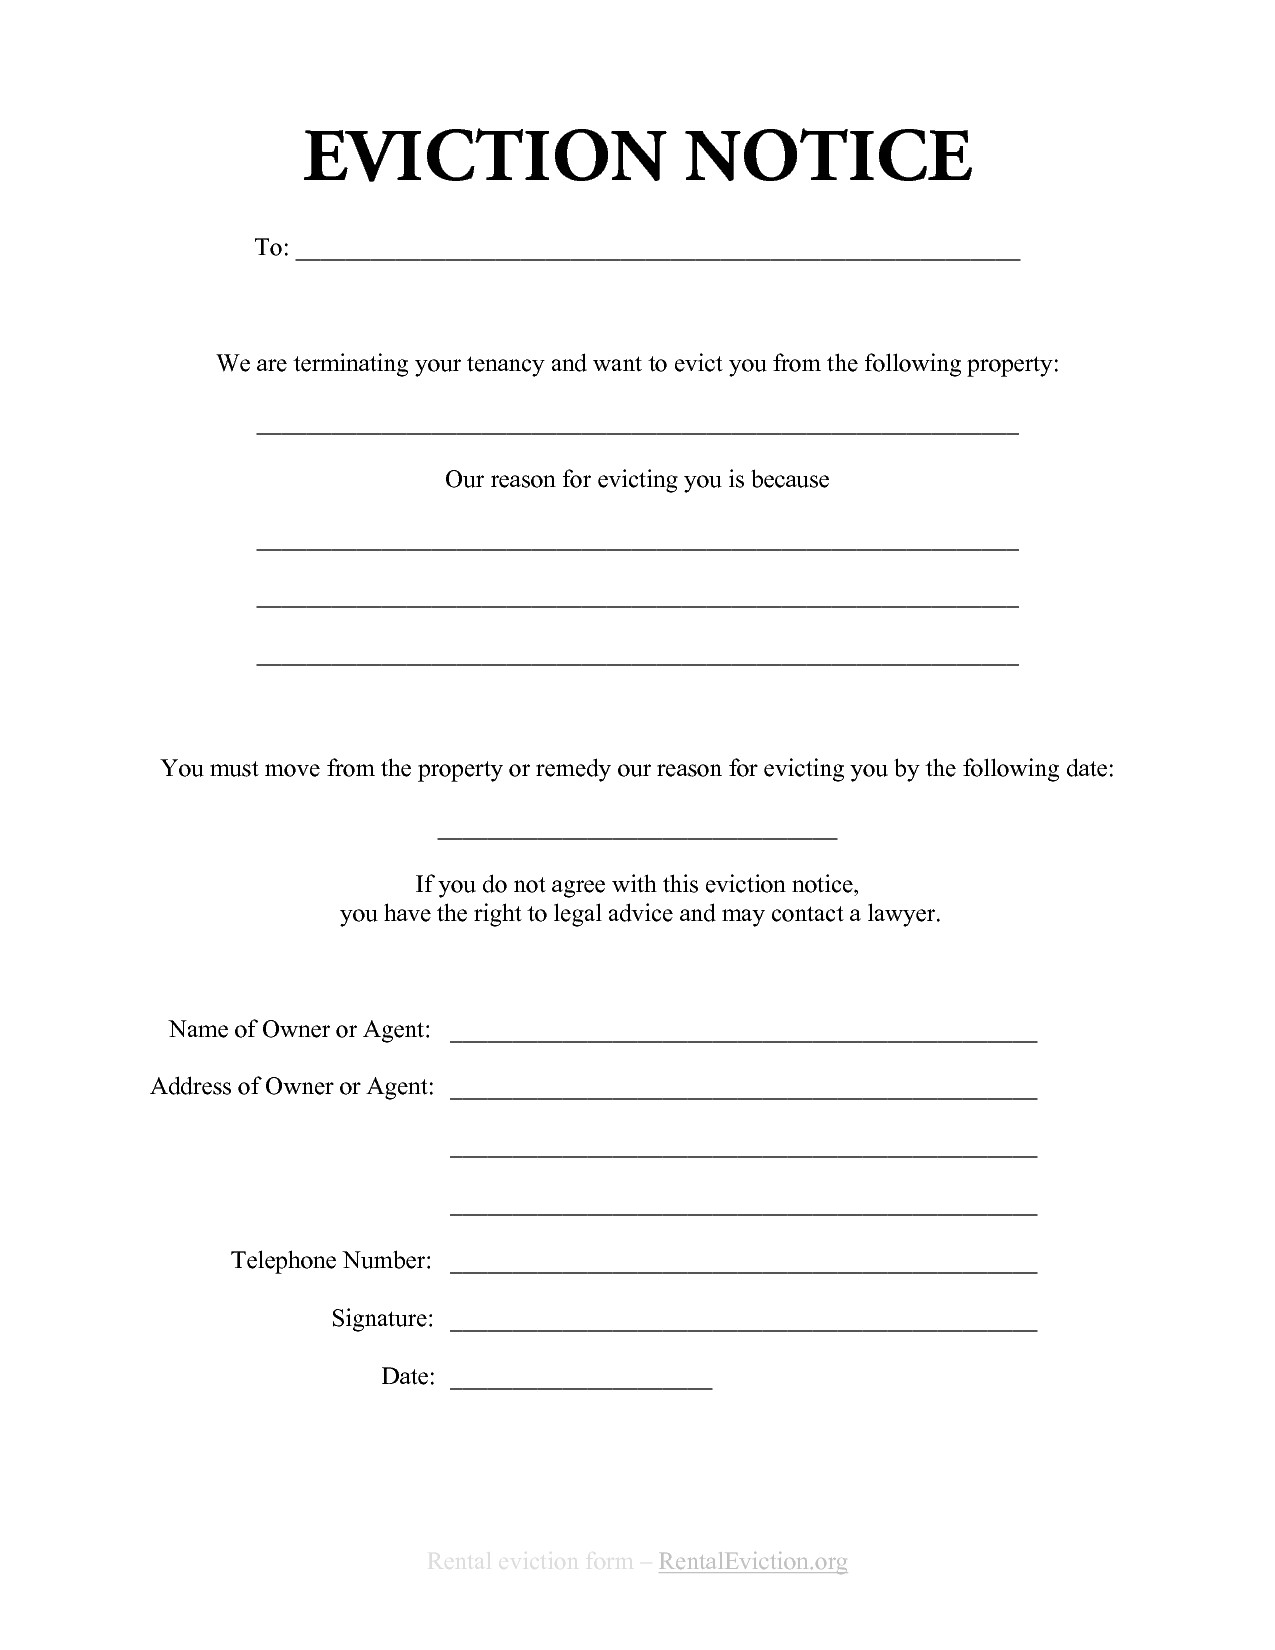 Free Eviction Notice Template Free Print Out Eviction Notices